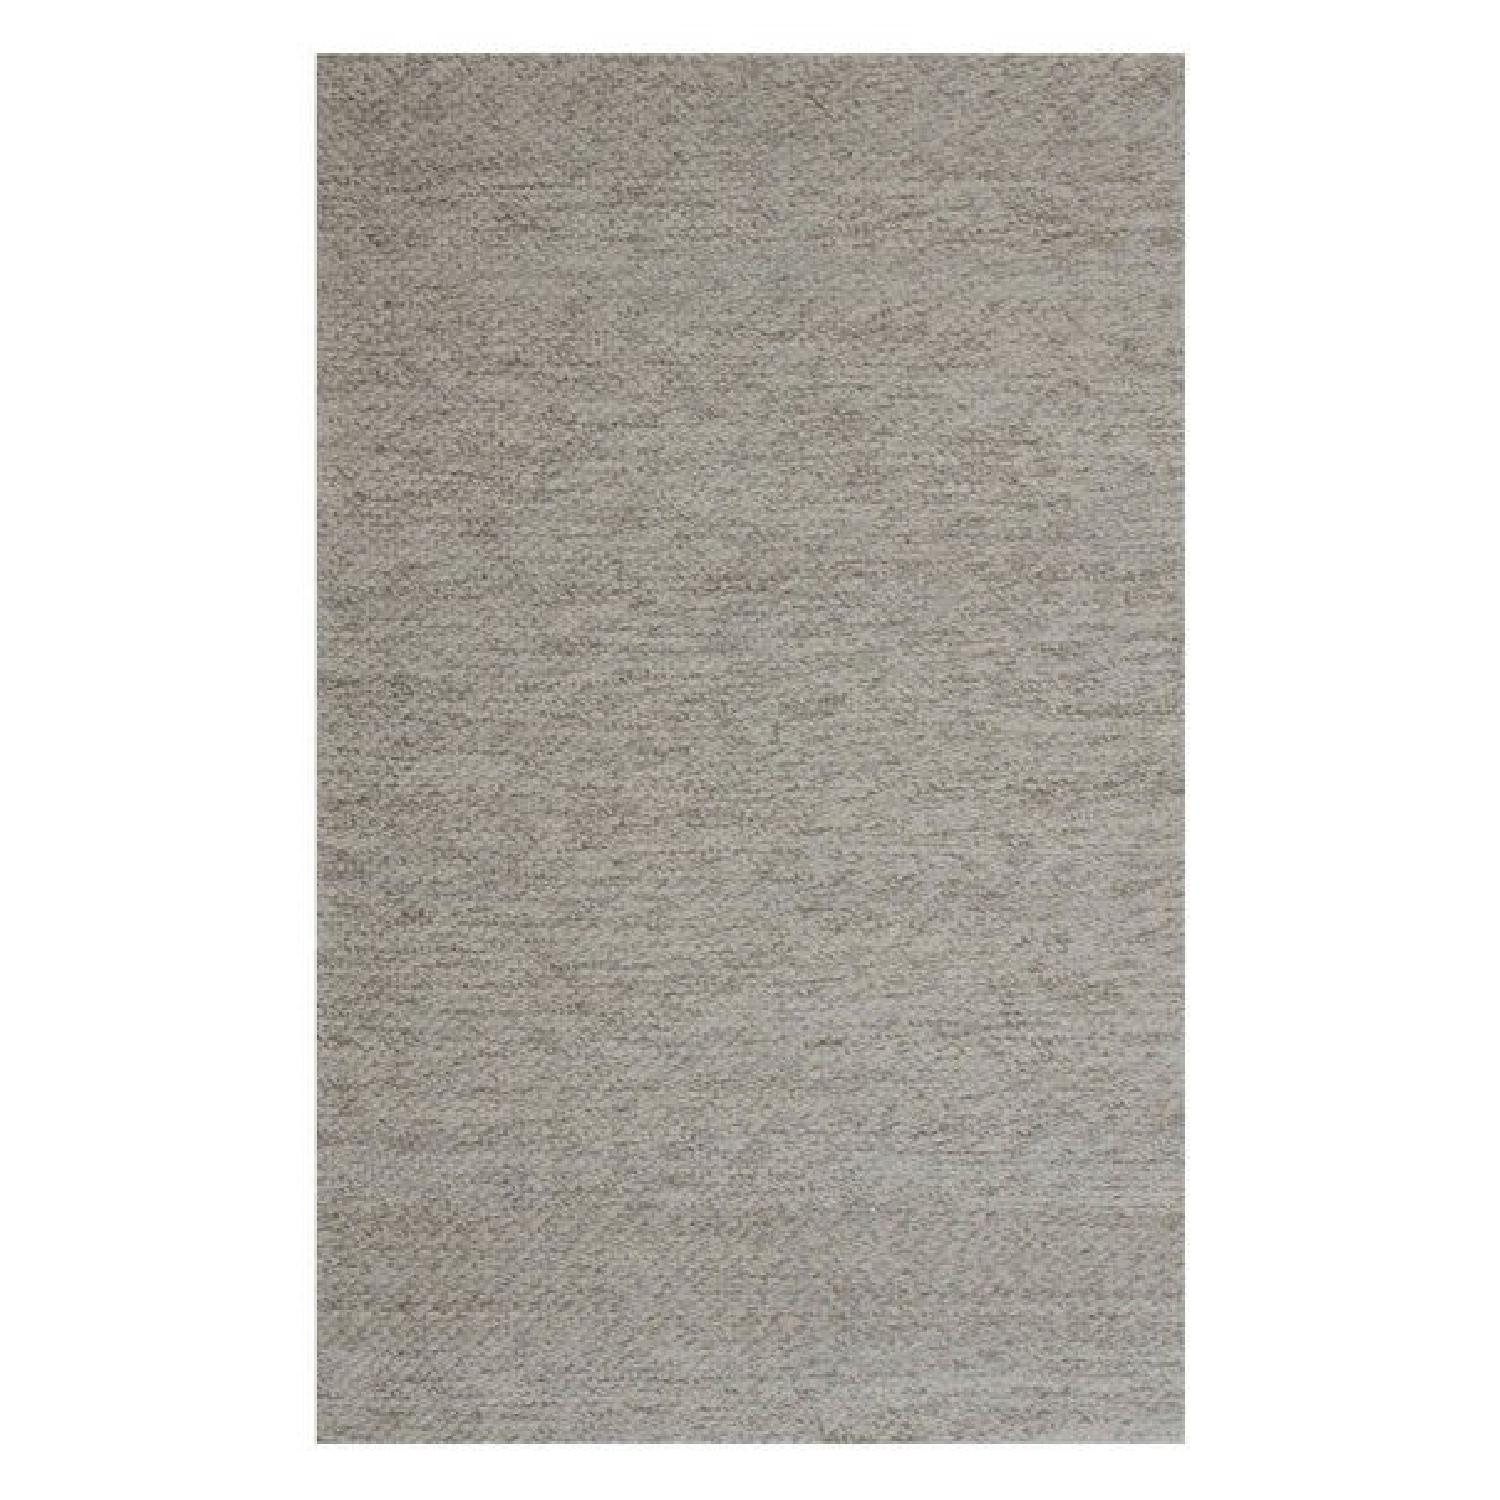 Mitchell Gold + Bob Williams Quinn Natural Shag Rug